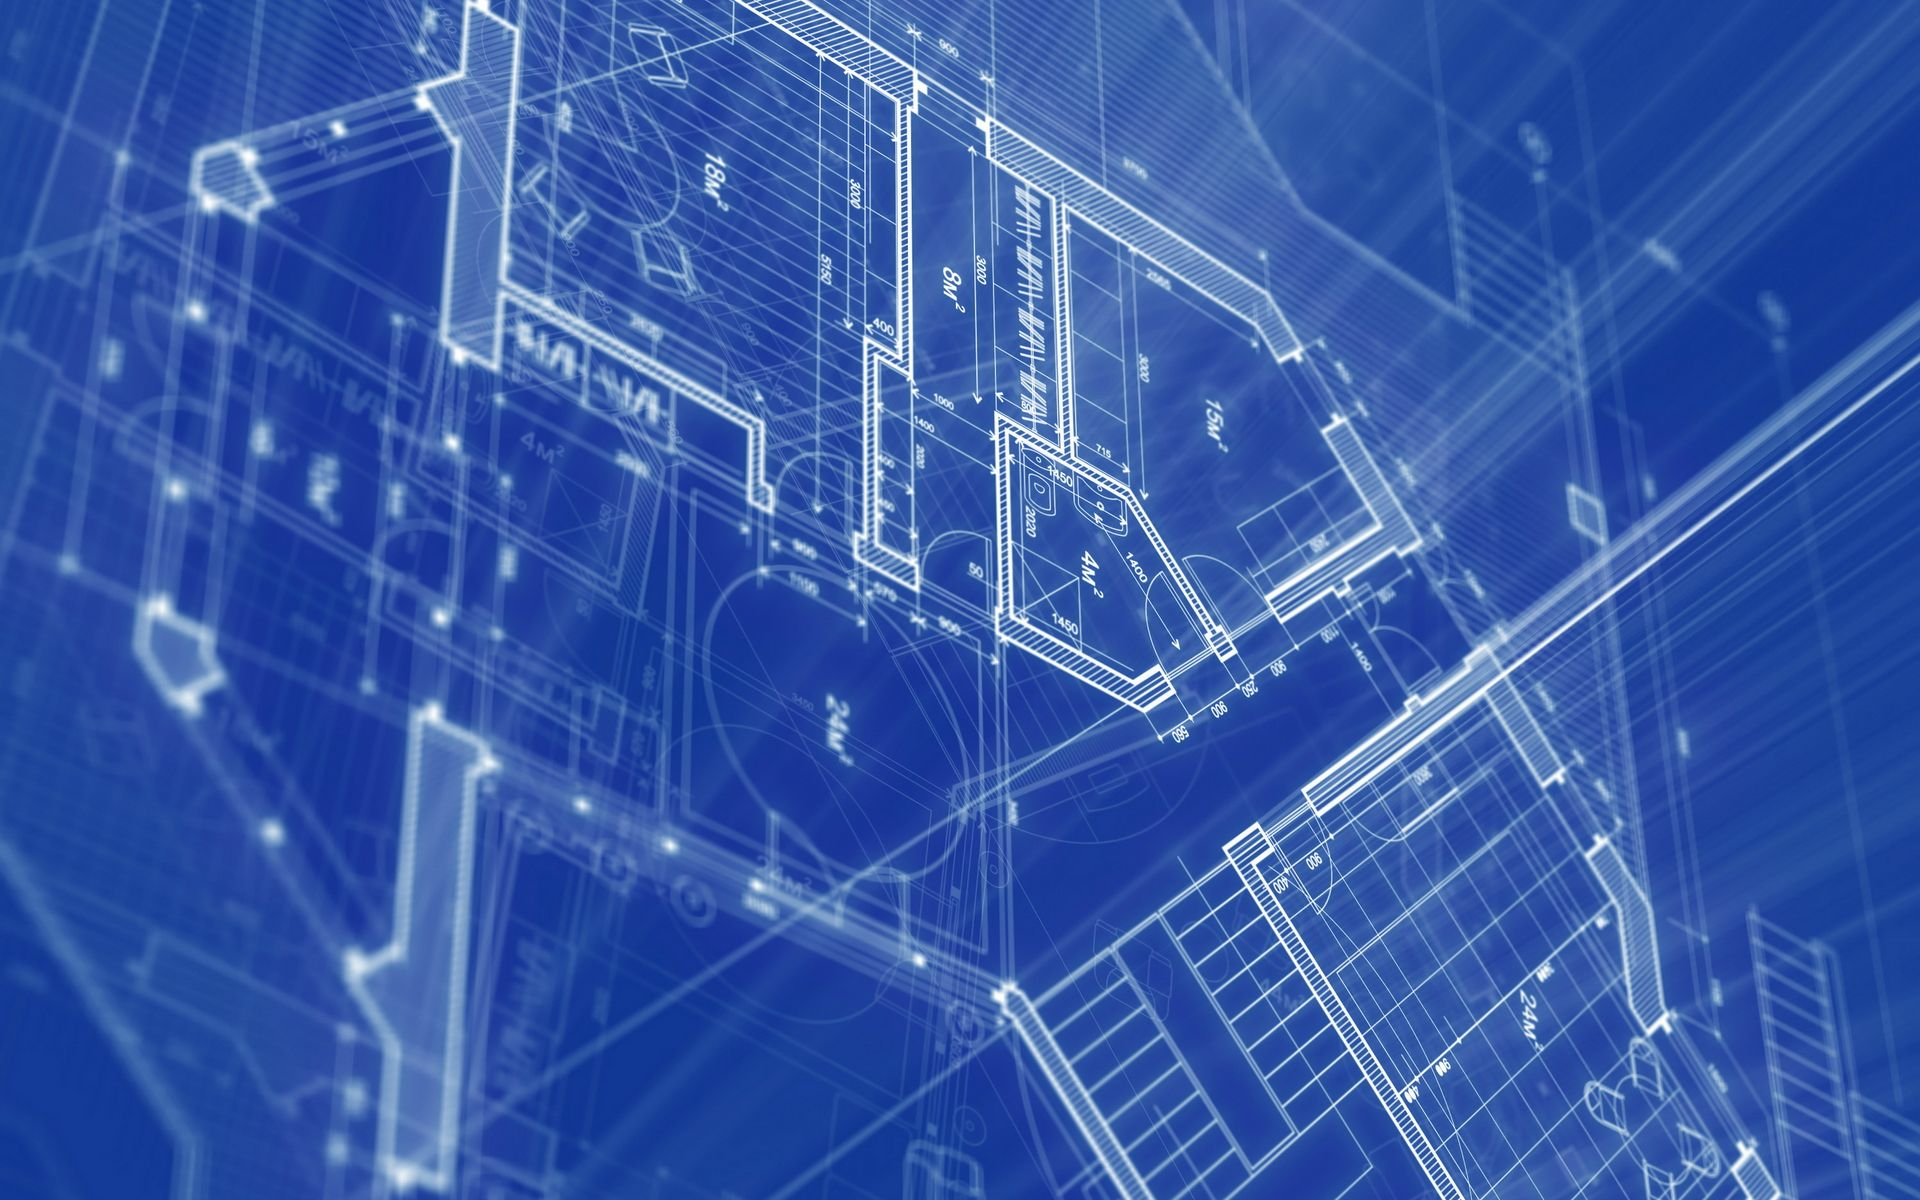 Architecture Wallpaper blueprint architecture hd widescreen desktop wallpaper | blueprint